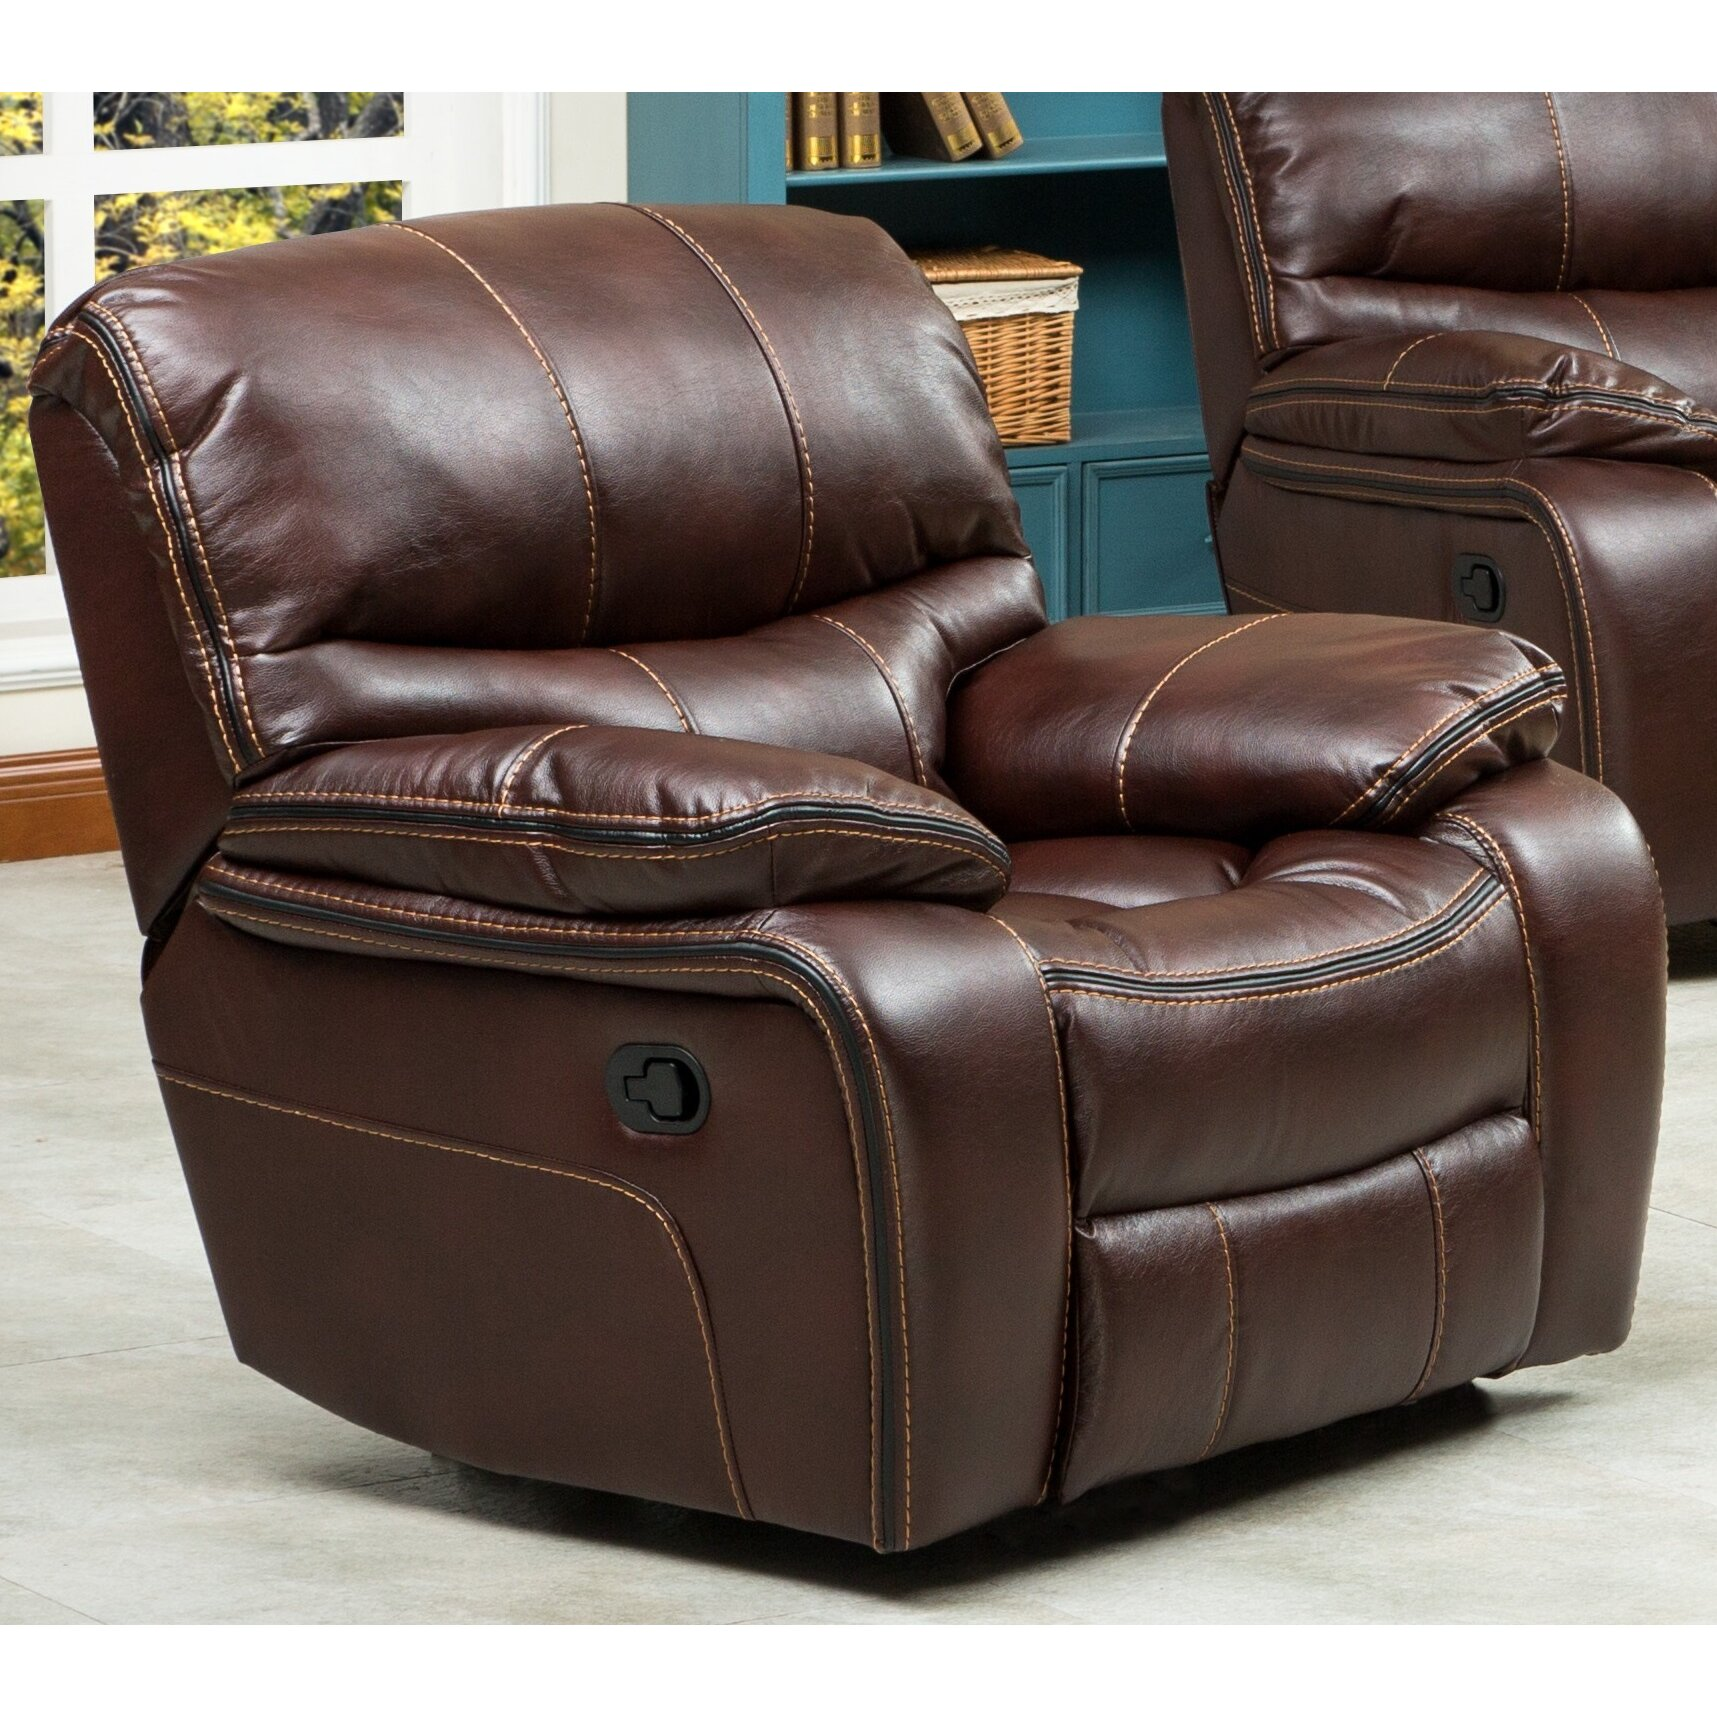 Roundhill Furniture Ewa 3 Piece Reclining Leather Living Room Set Wayfair